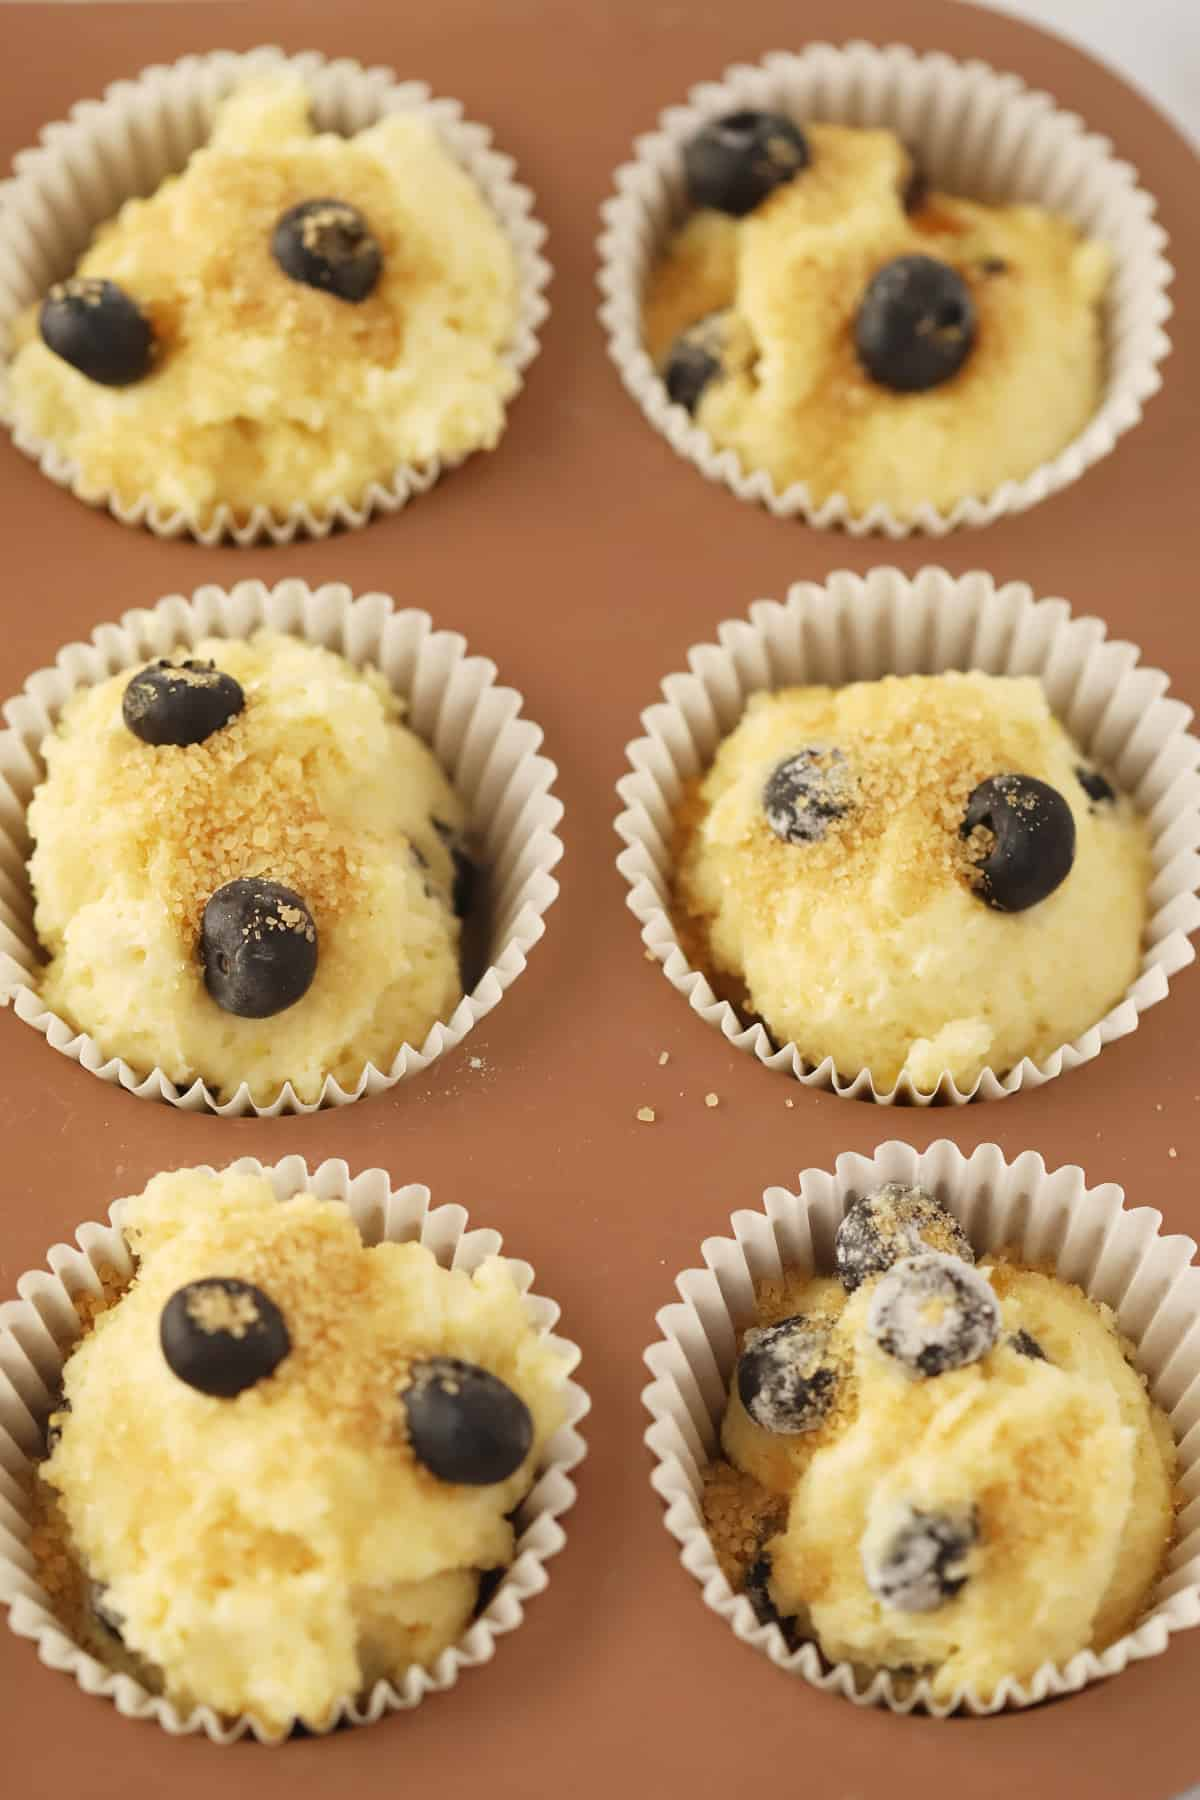 Blueberry muffins topped with coarse sugar ready to bake.